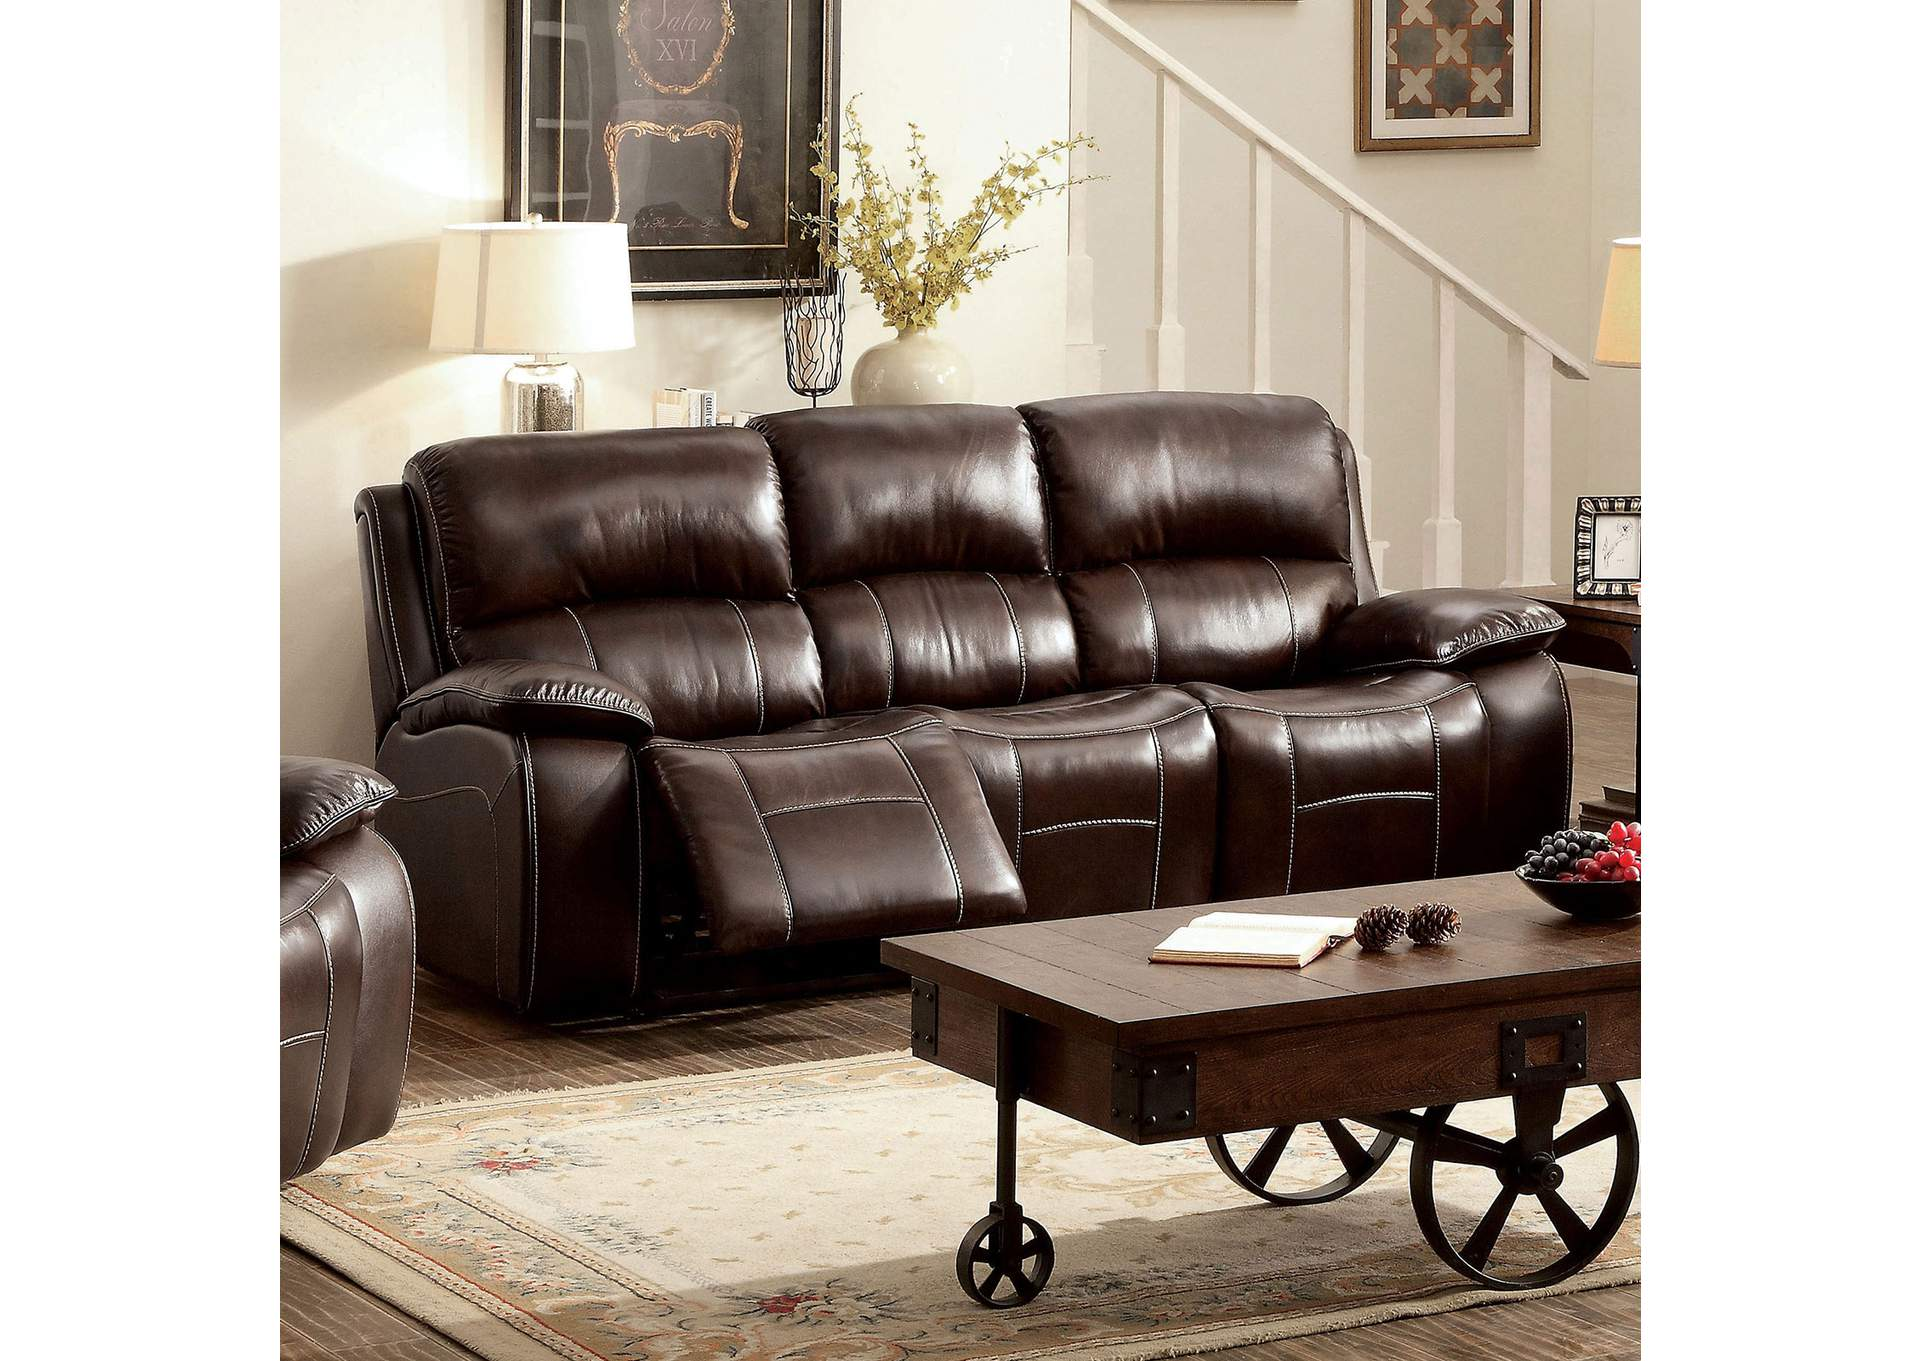 Sparks Furniture Ruth Brown Top Grain Leather Match Sofa